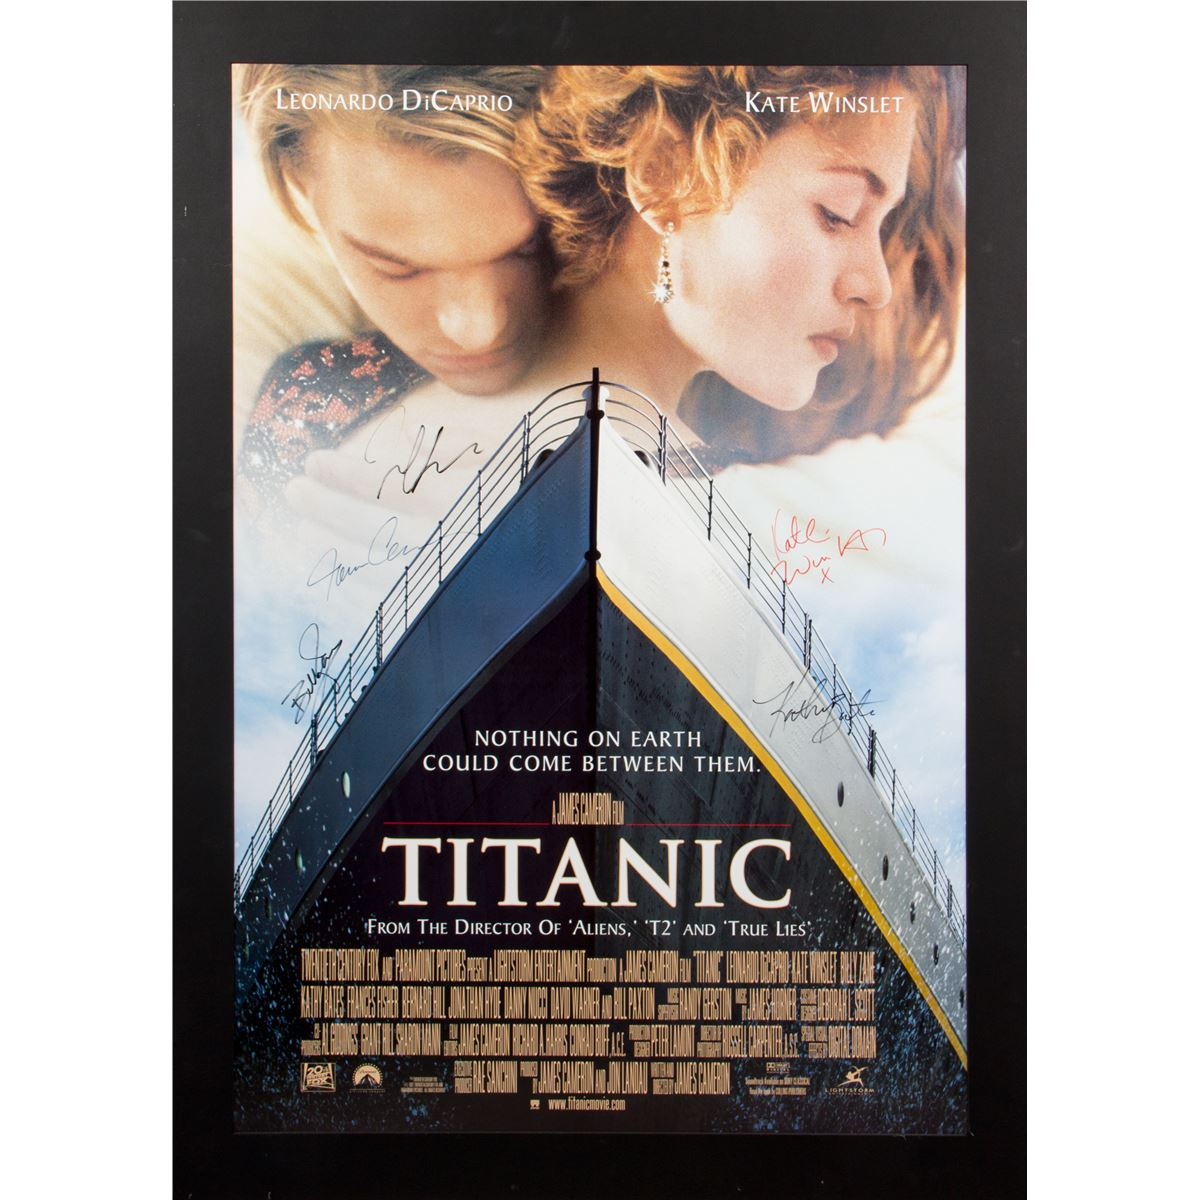 titanic original 1997 onesheet poster signed by cast members